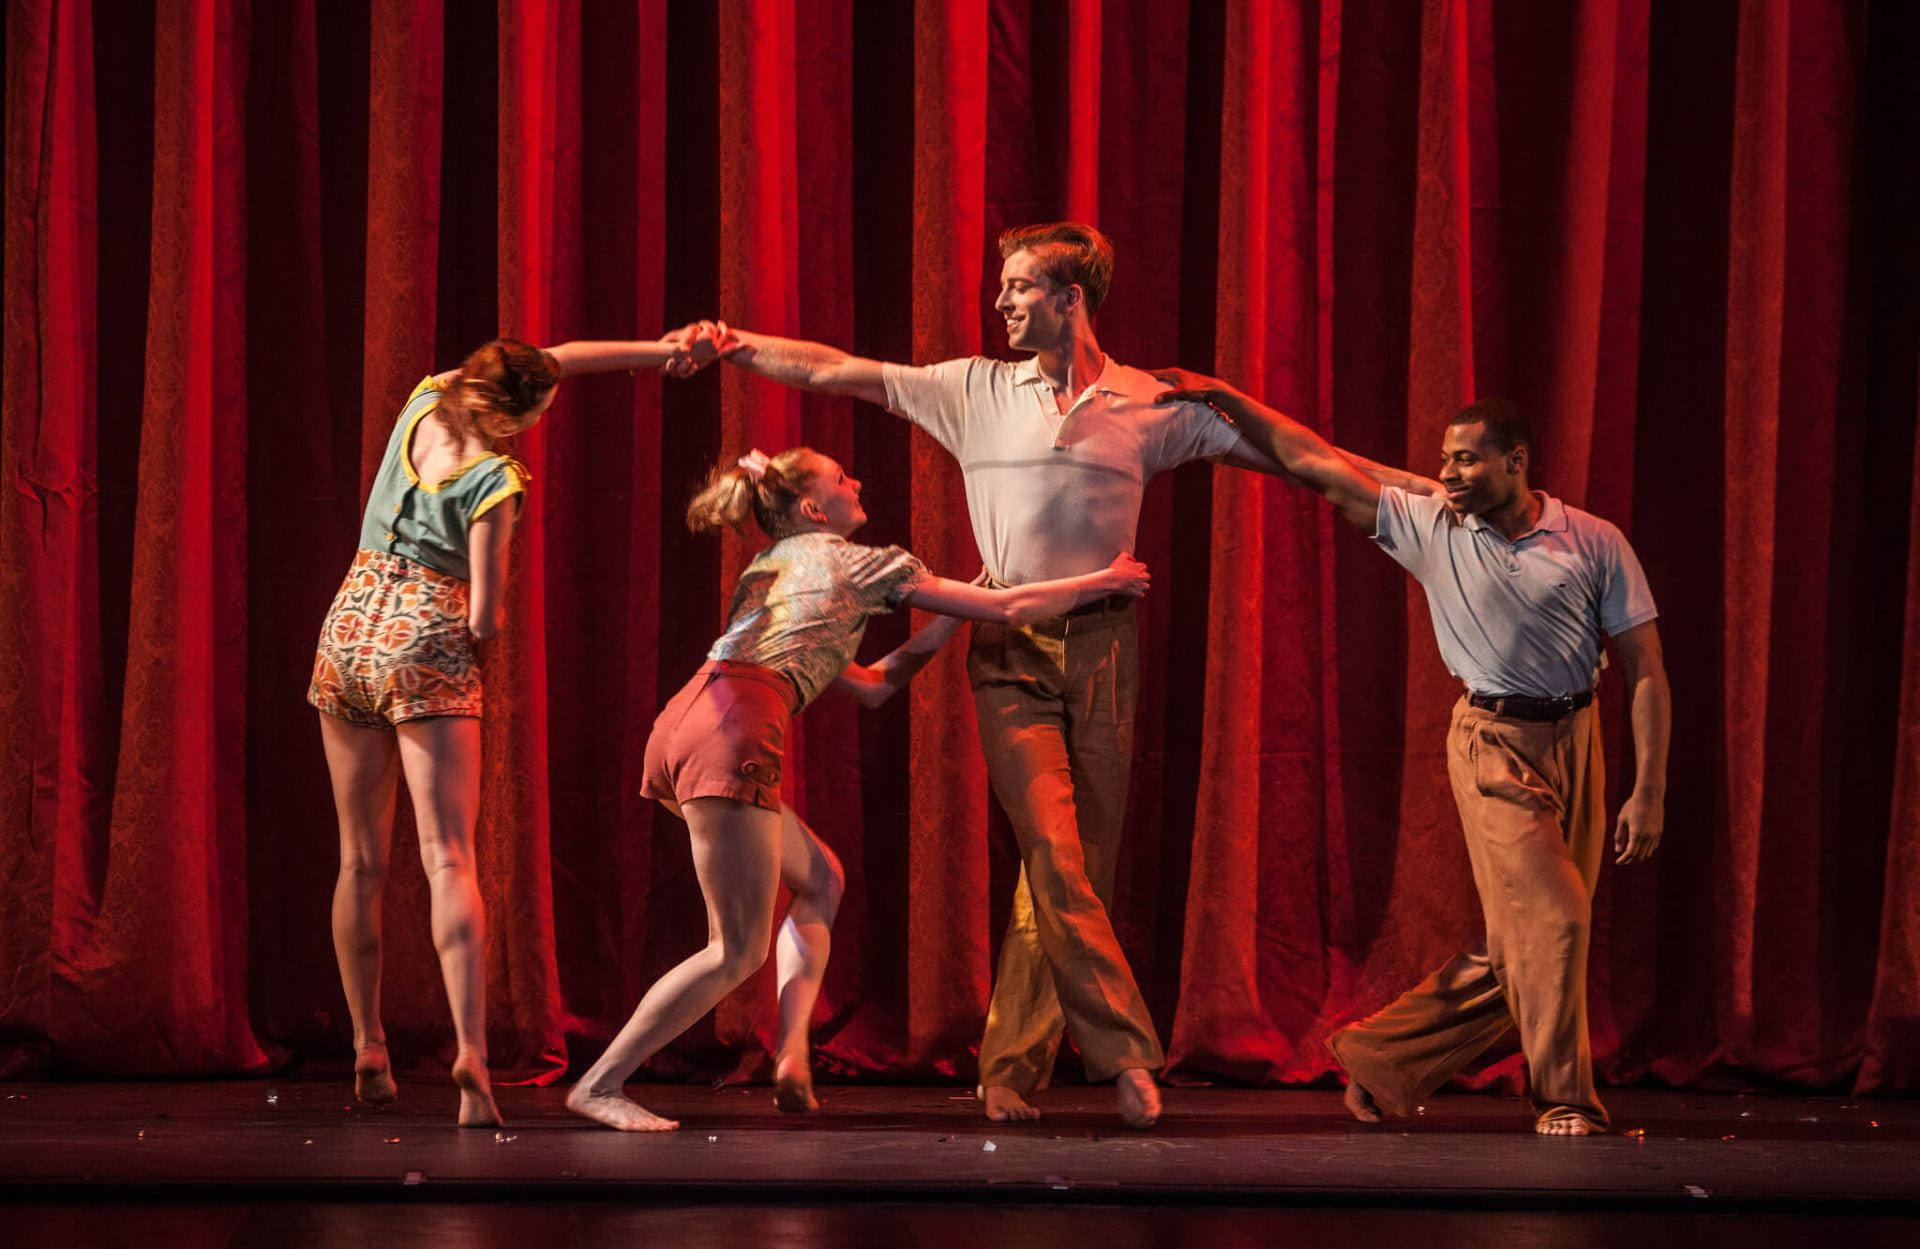 group of dancers in front of a red curtain